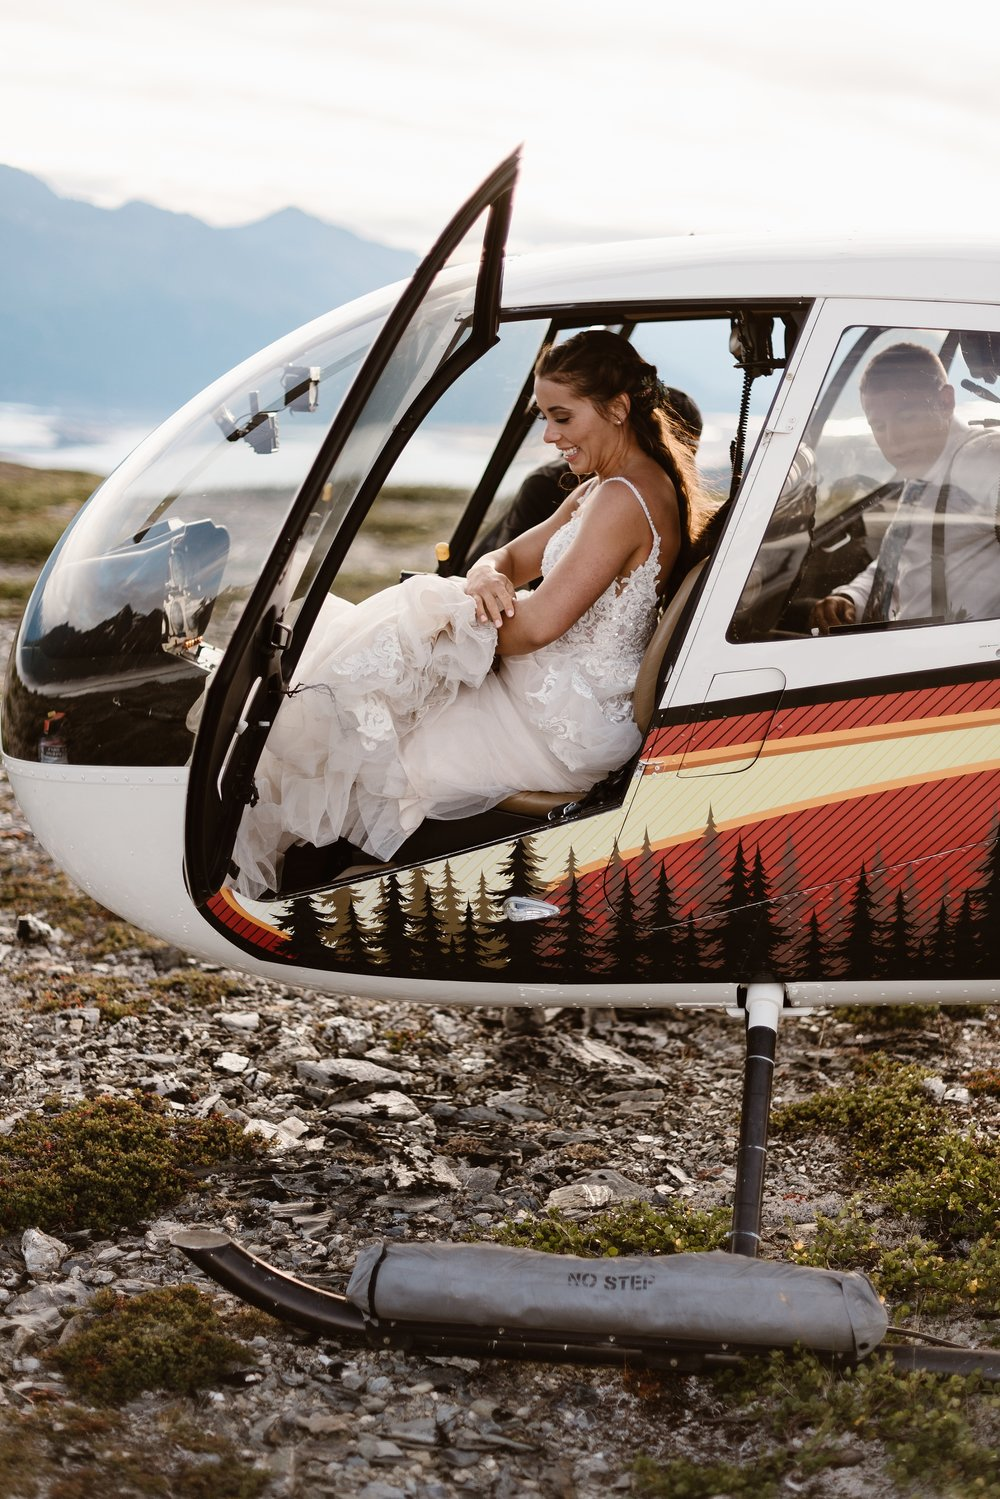 The bride, Jordyn, bundles up her wedding dress as she tries to fit the entirety into the front seat of the helicopter. This unique eloping idea was captured by Alaska wedding photographers Adventure Instead.